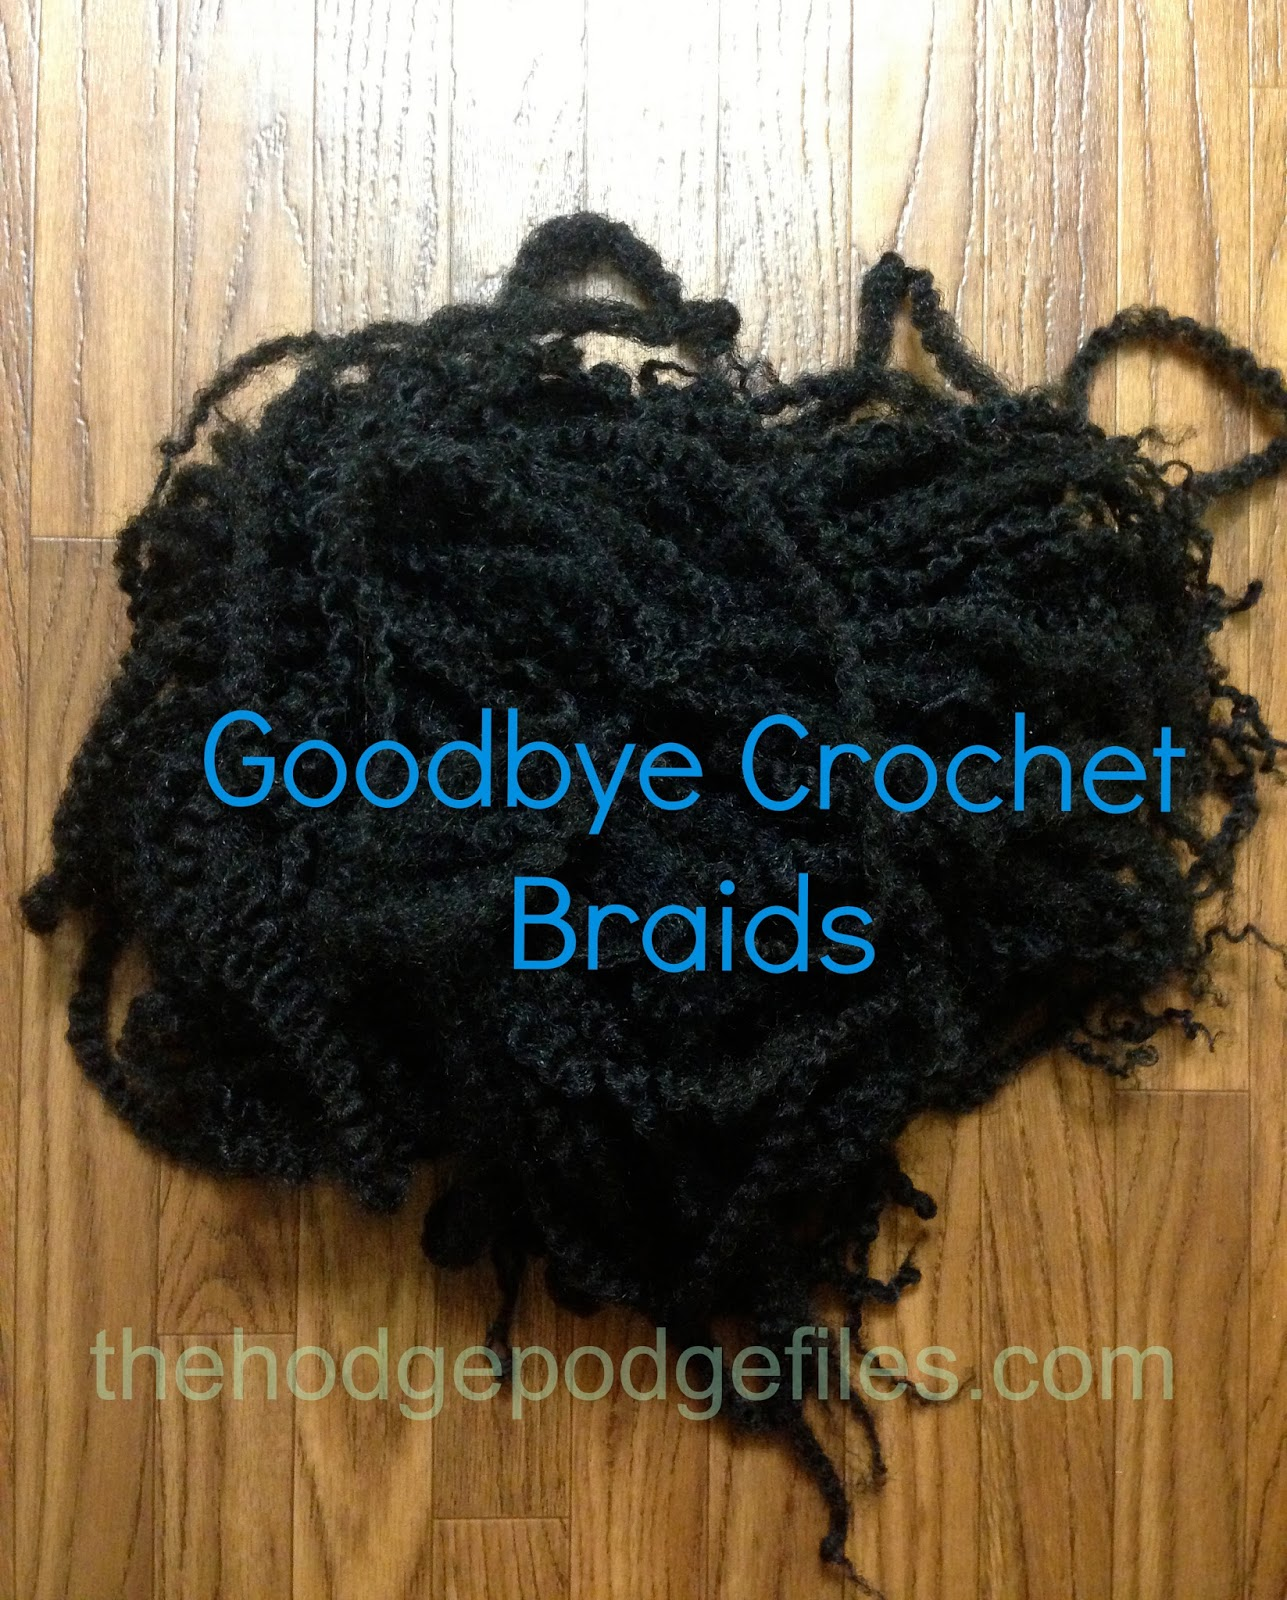 Crochet Braids Questions And Answers : Pictures Ofstraight Human Hair Crochet Braids LONG HAIRSTYLES